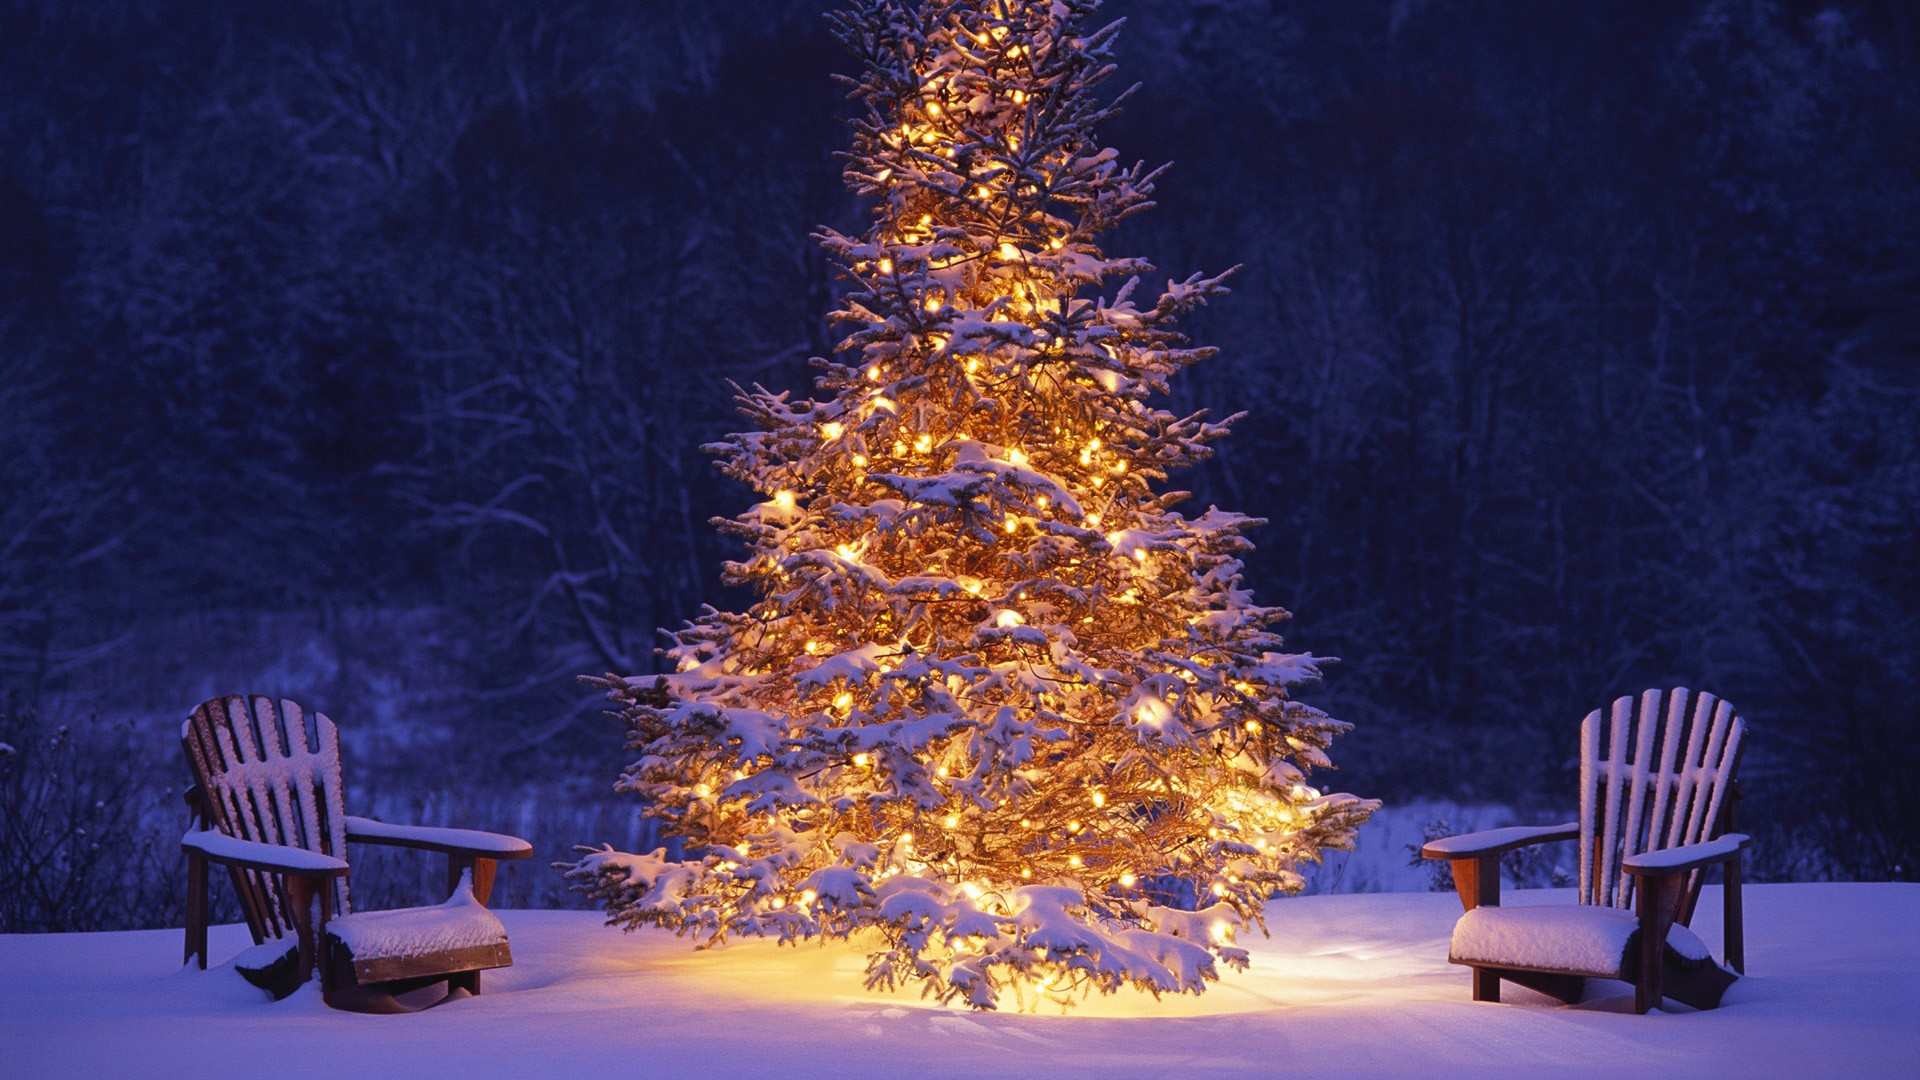 V.44: HD Christmas Wallpaper 1920x1080, HD Images of Christmas ...